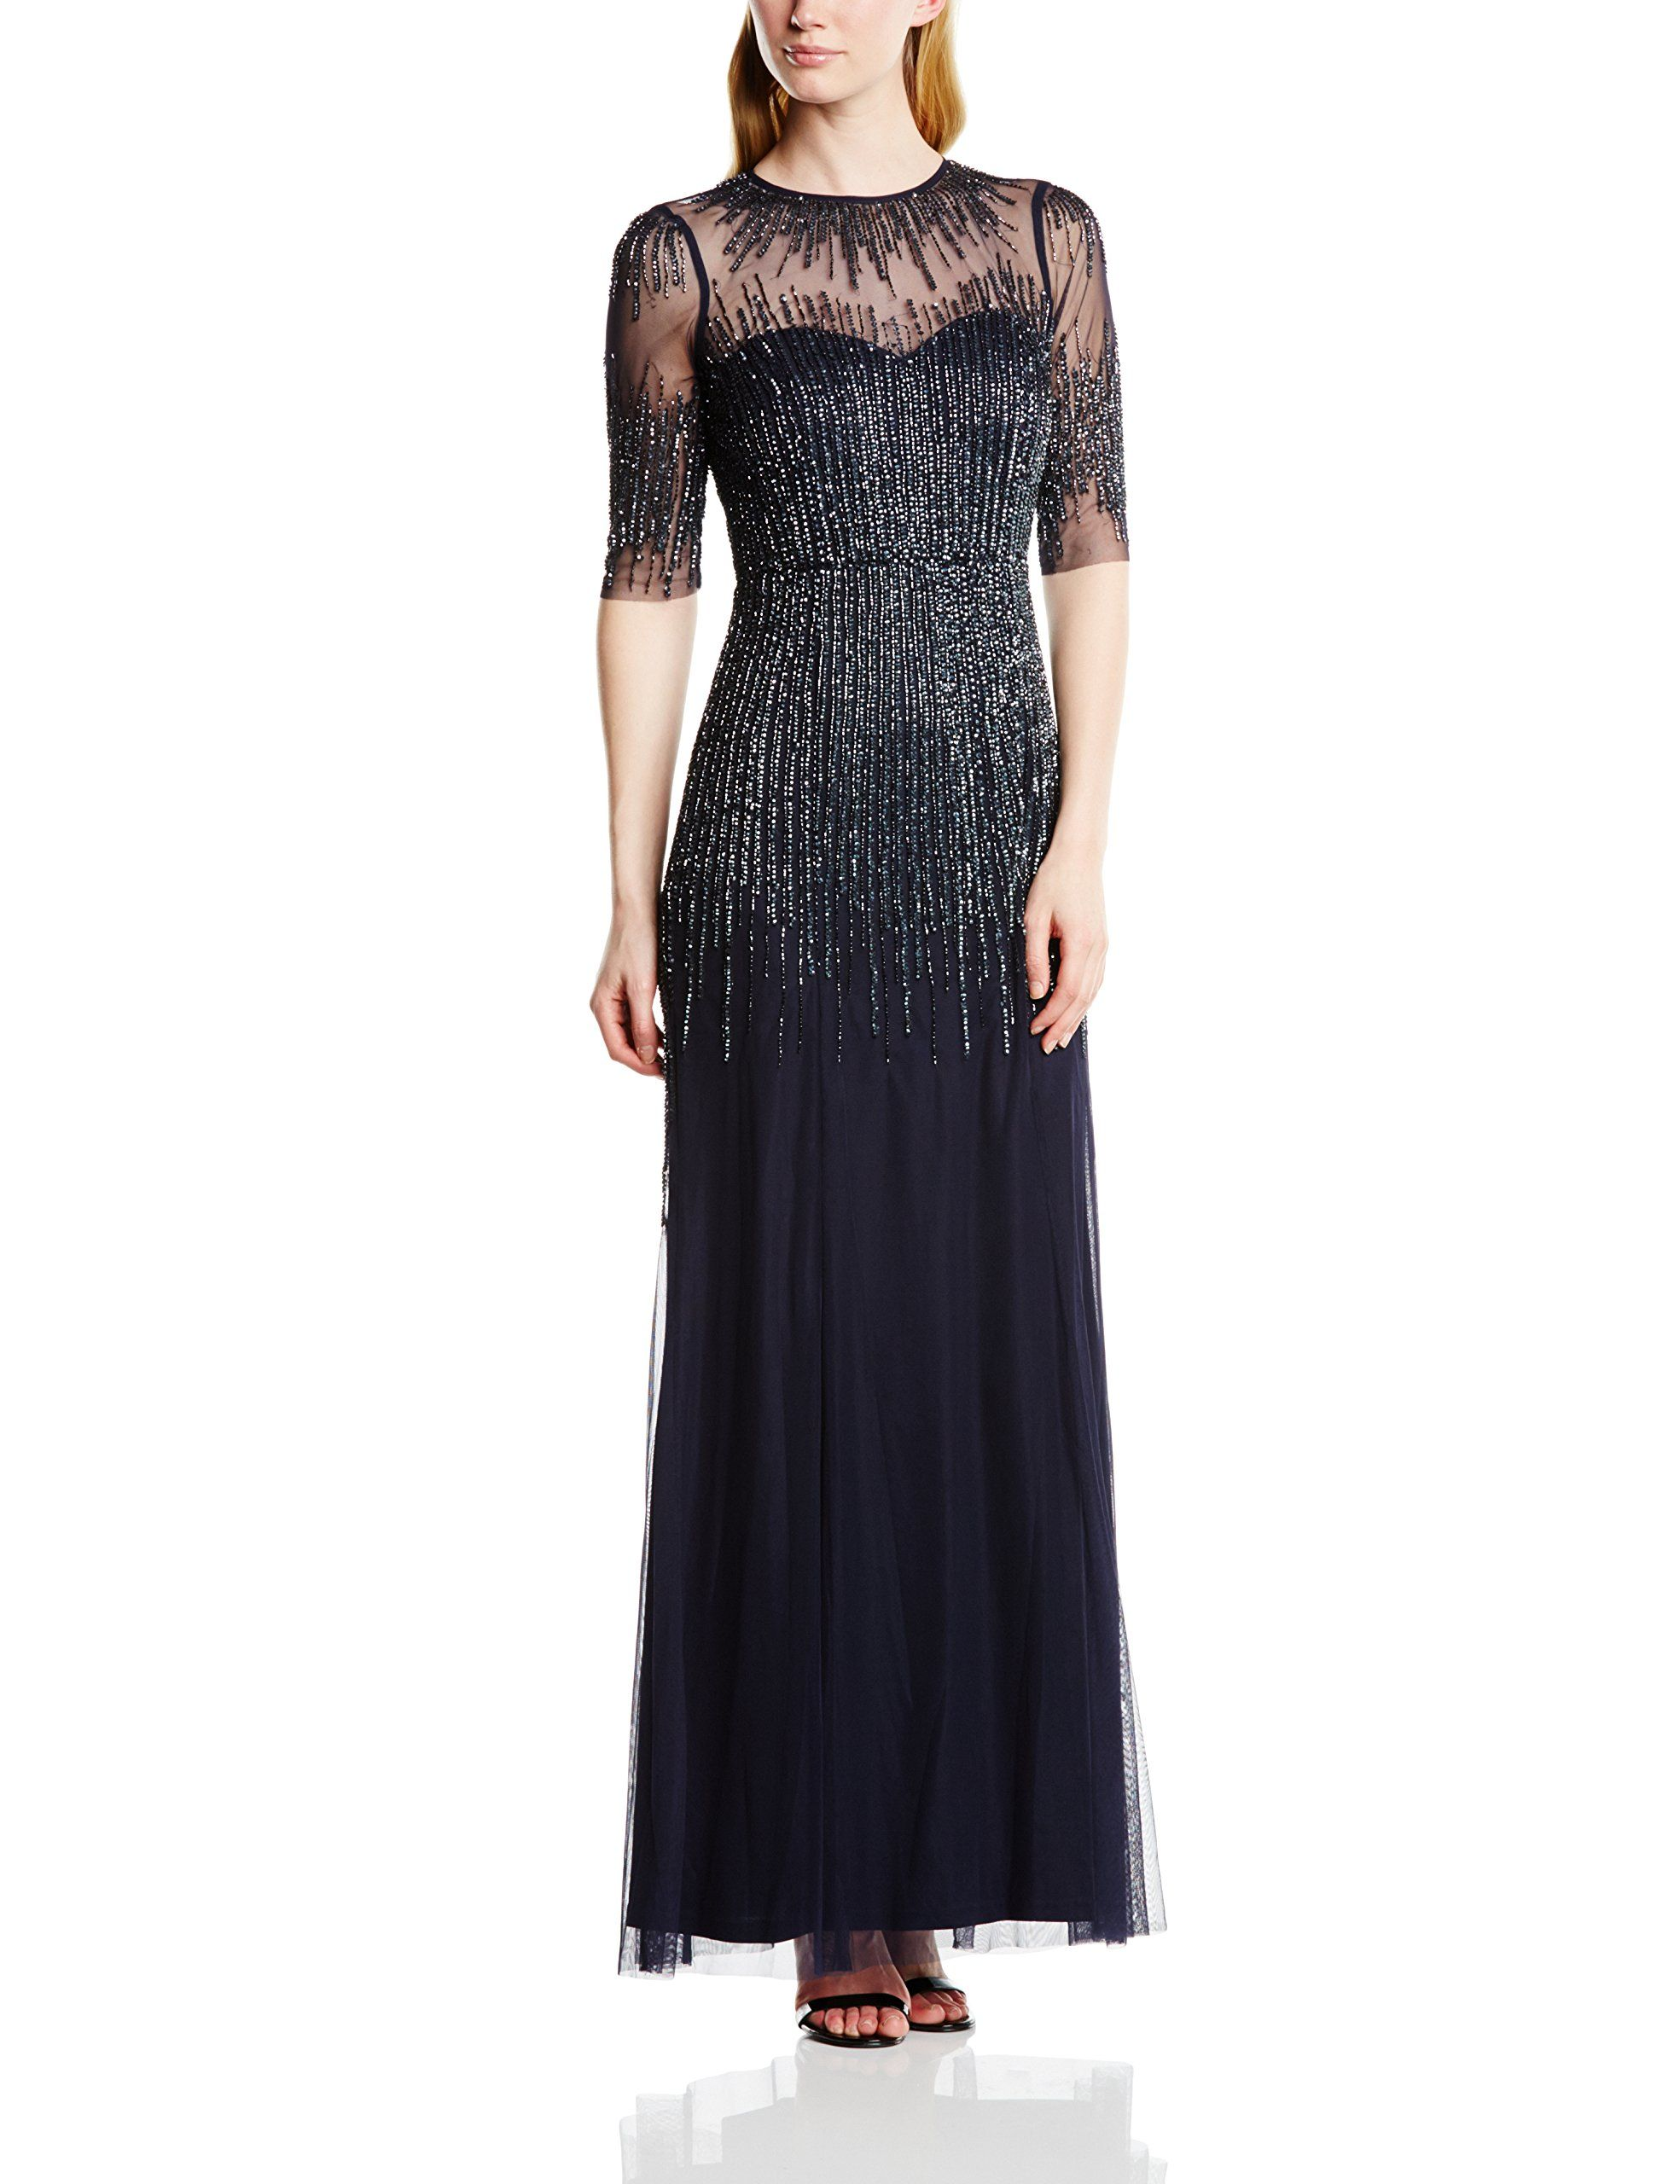 Adrianna papell women long beaded gwn with illusion nk sleeve